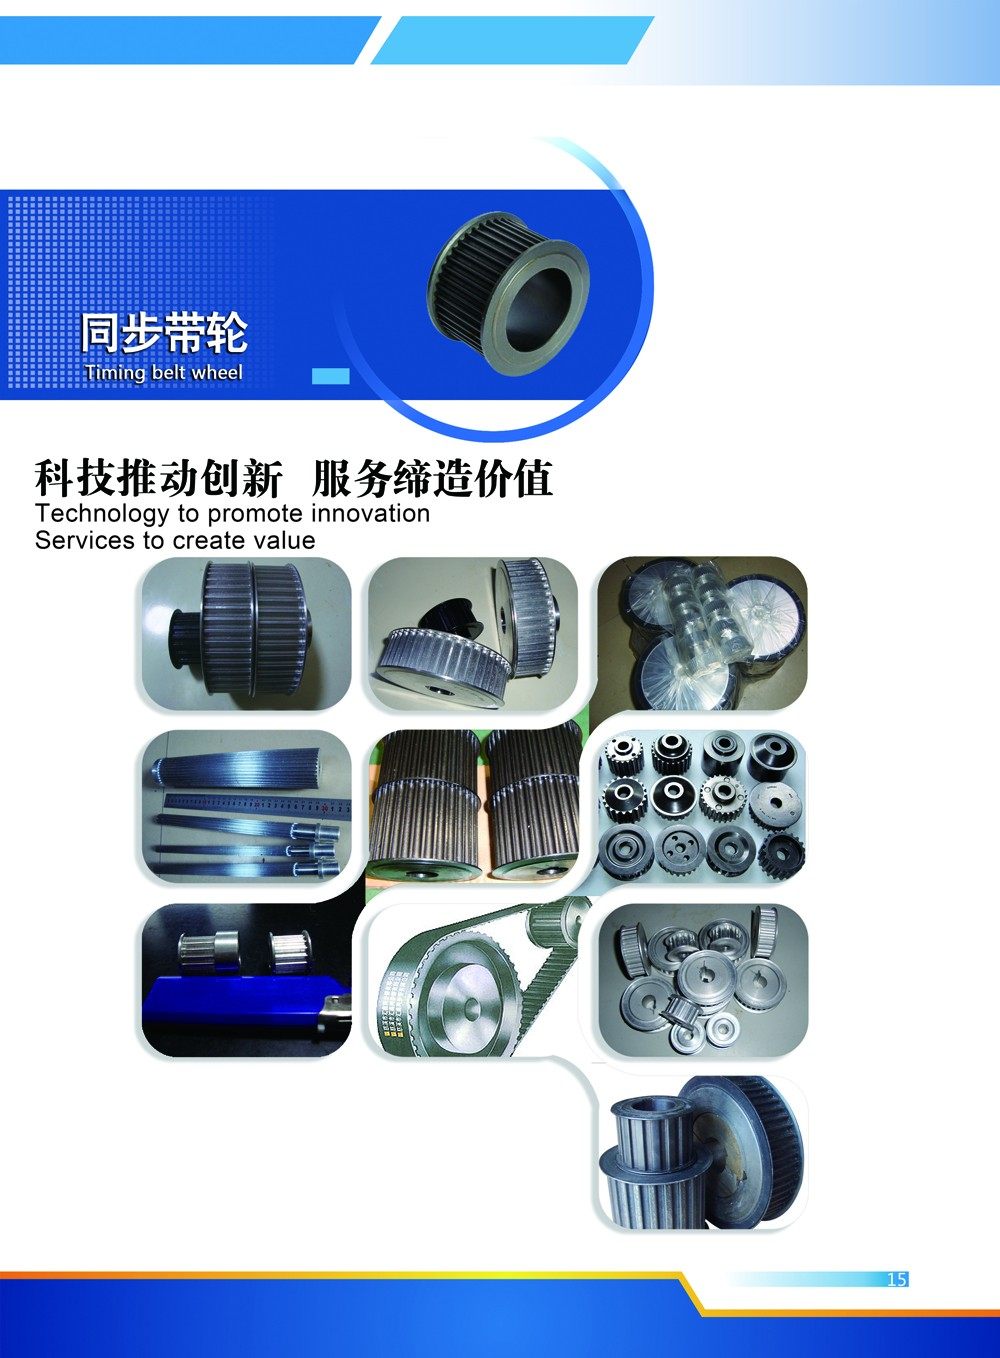 Htd 3m 5m 8m 14m Steel Straight Bore Timing Pulley Toothed Belt Pulleys